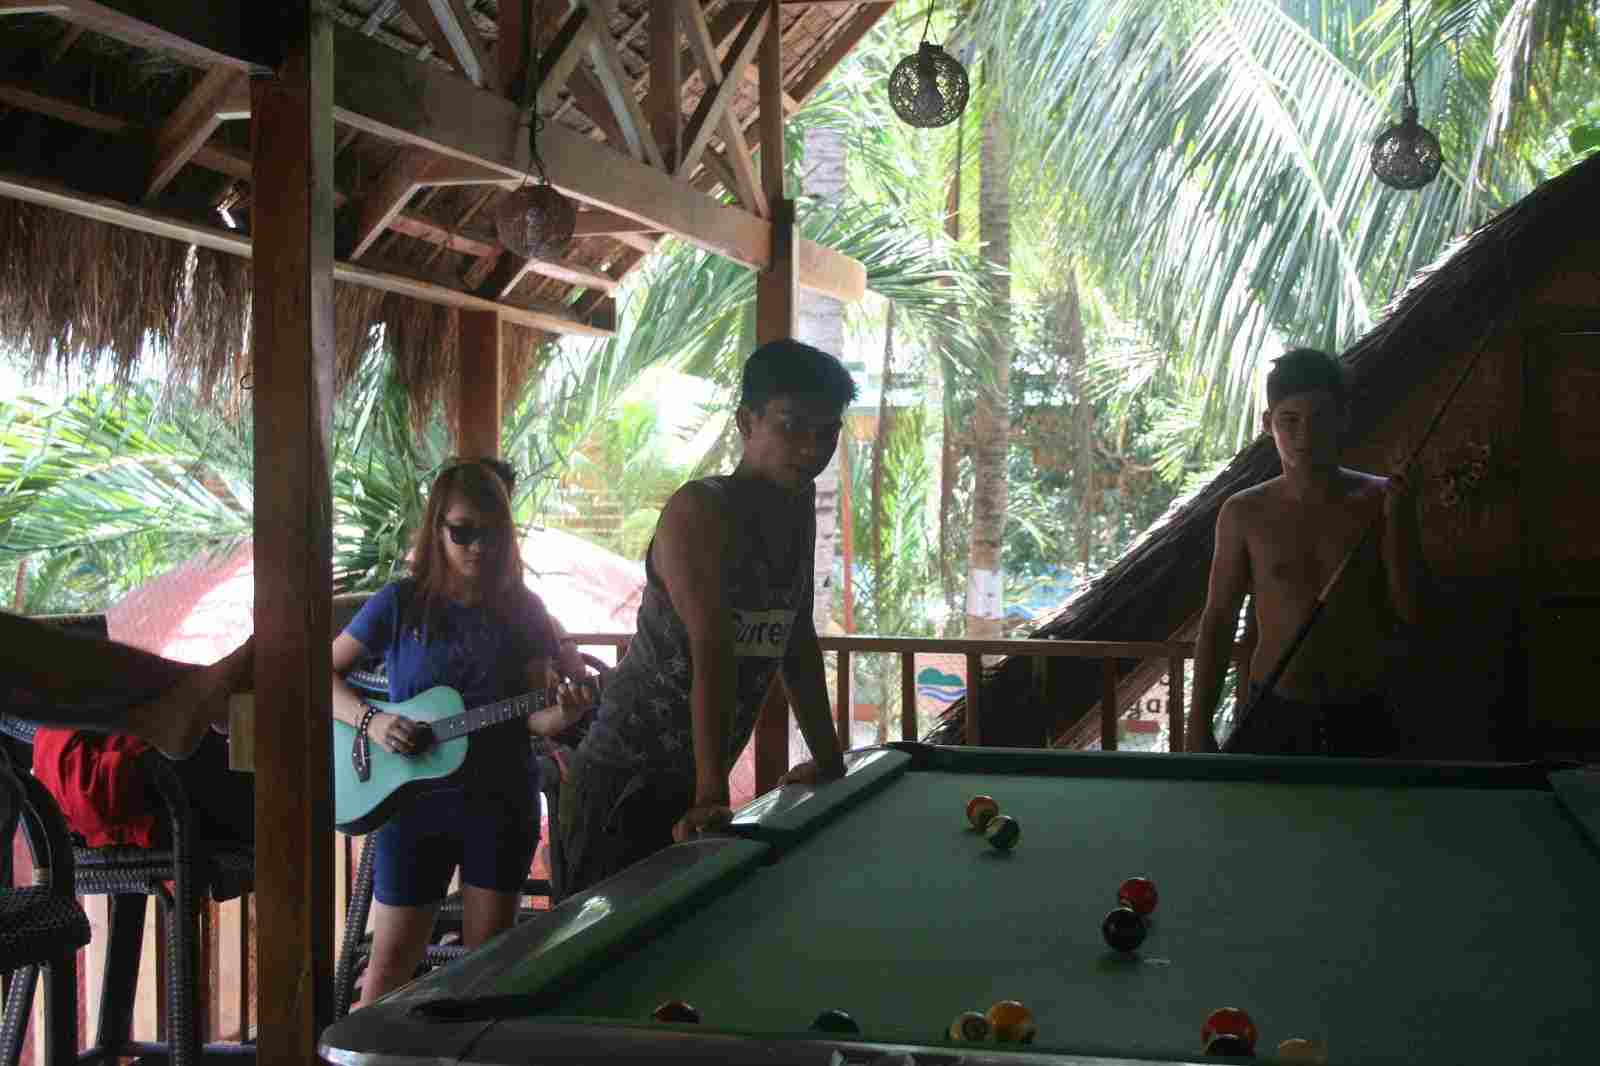 budget cheap resort in panglao white island bohol philippines in 2018, best travel summer vacation tour, panglao chocolate hills resort billiard area, billiard playing with friends